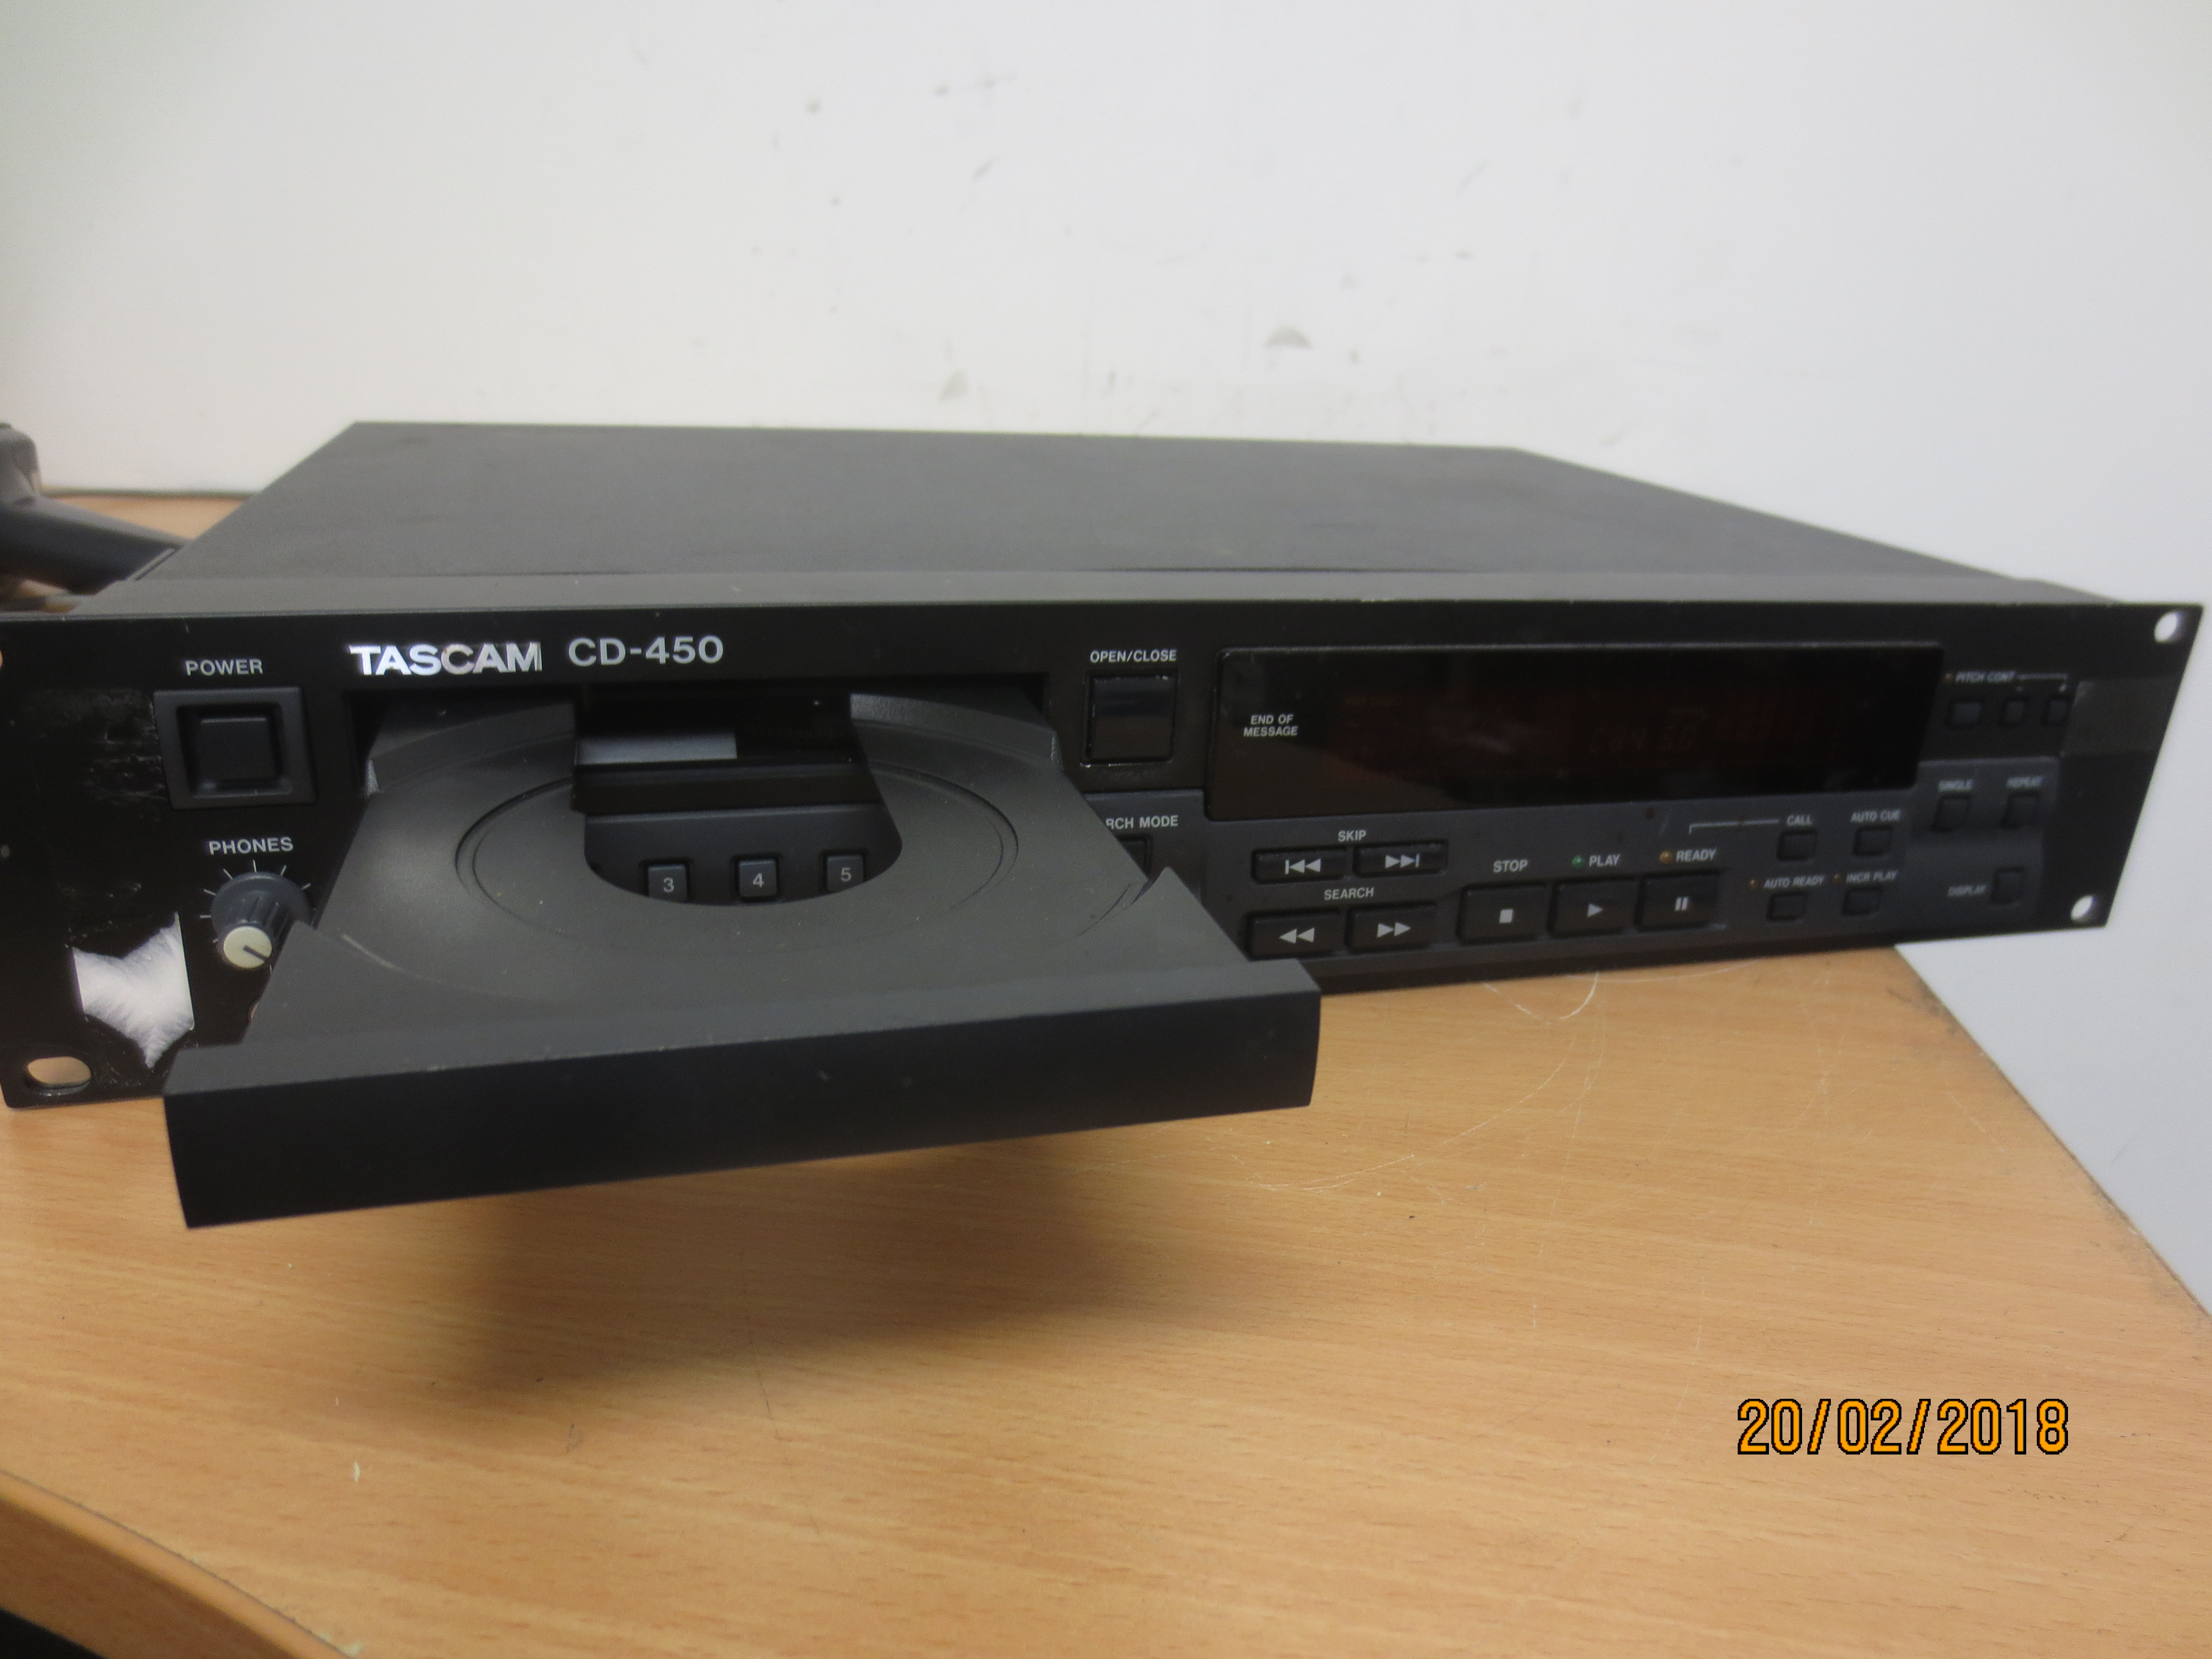 Tascam CD-450 Compact Disc Player